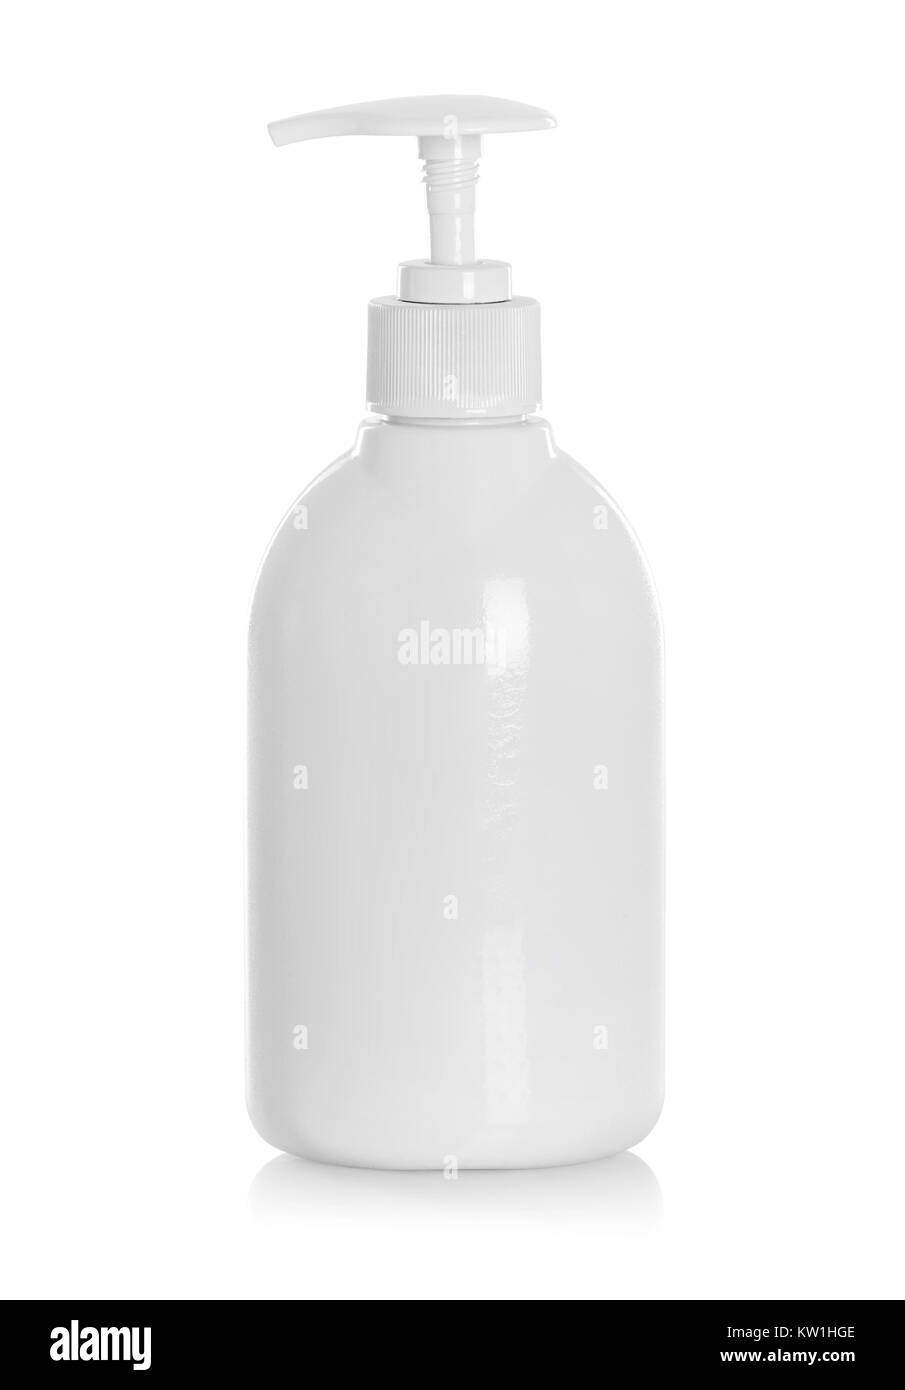 shower product in a white bottle with blue writing and a nozzle